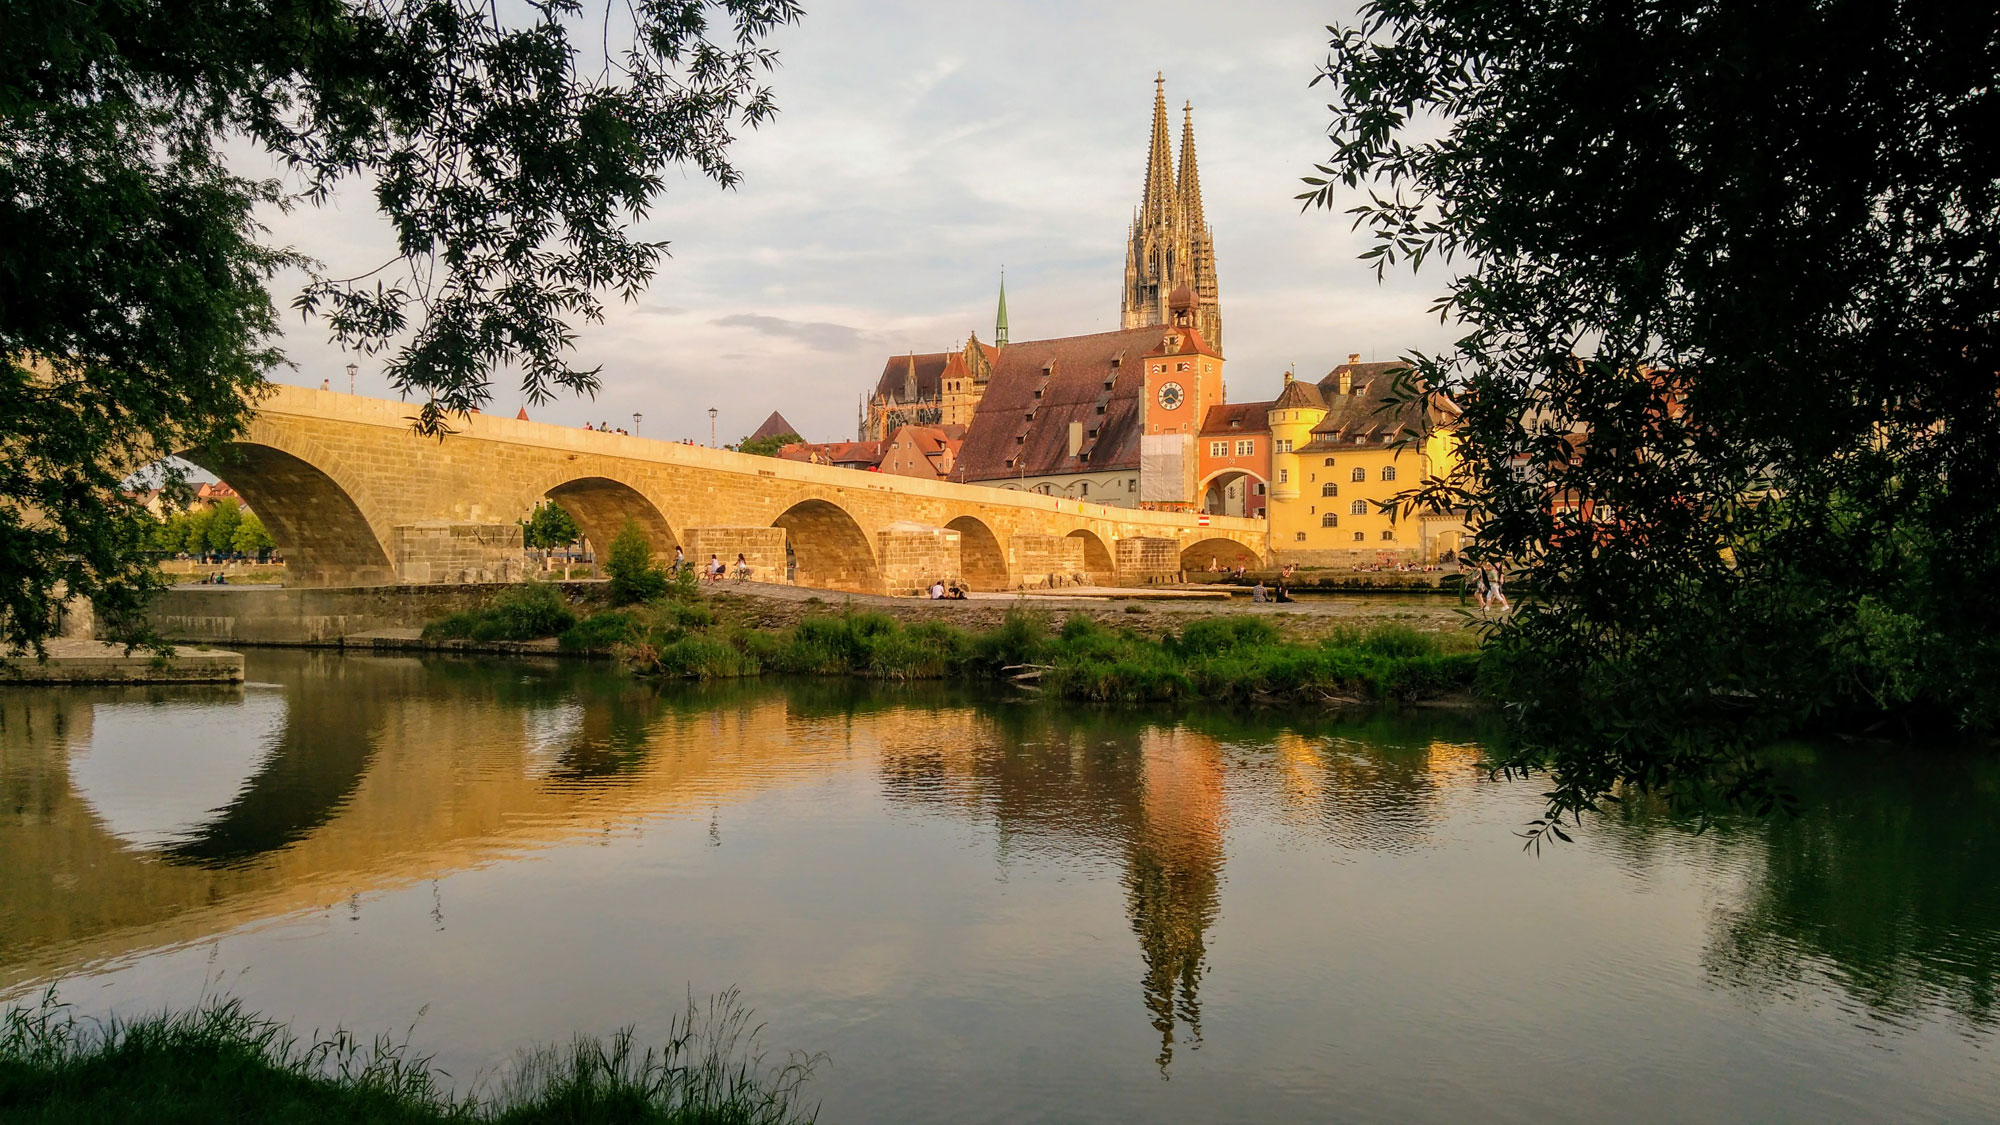 Regensburg is the best-preserved, medieval town in Germany and a UNESCO World Heritage Site.